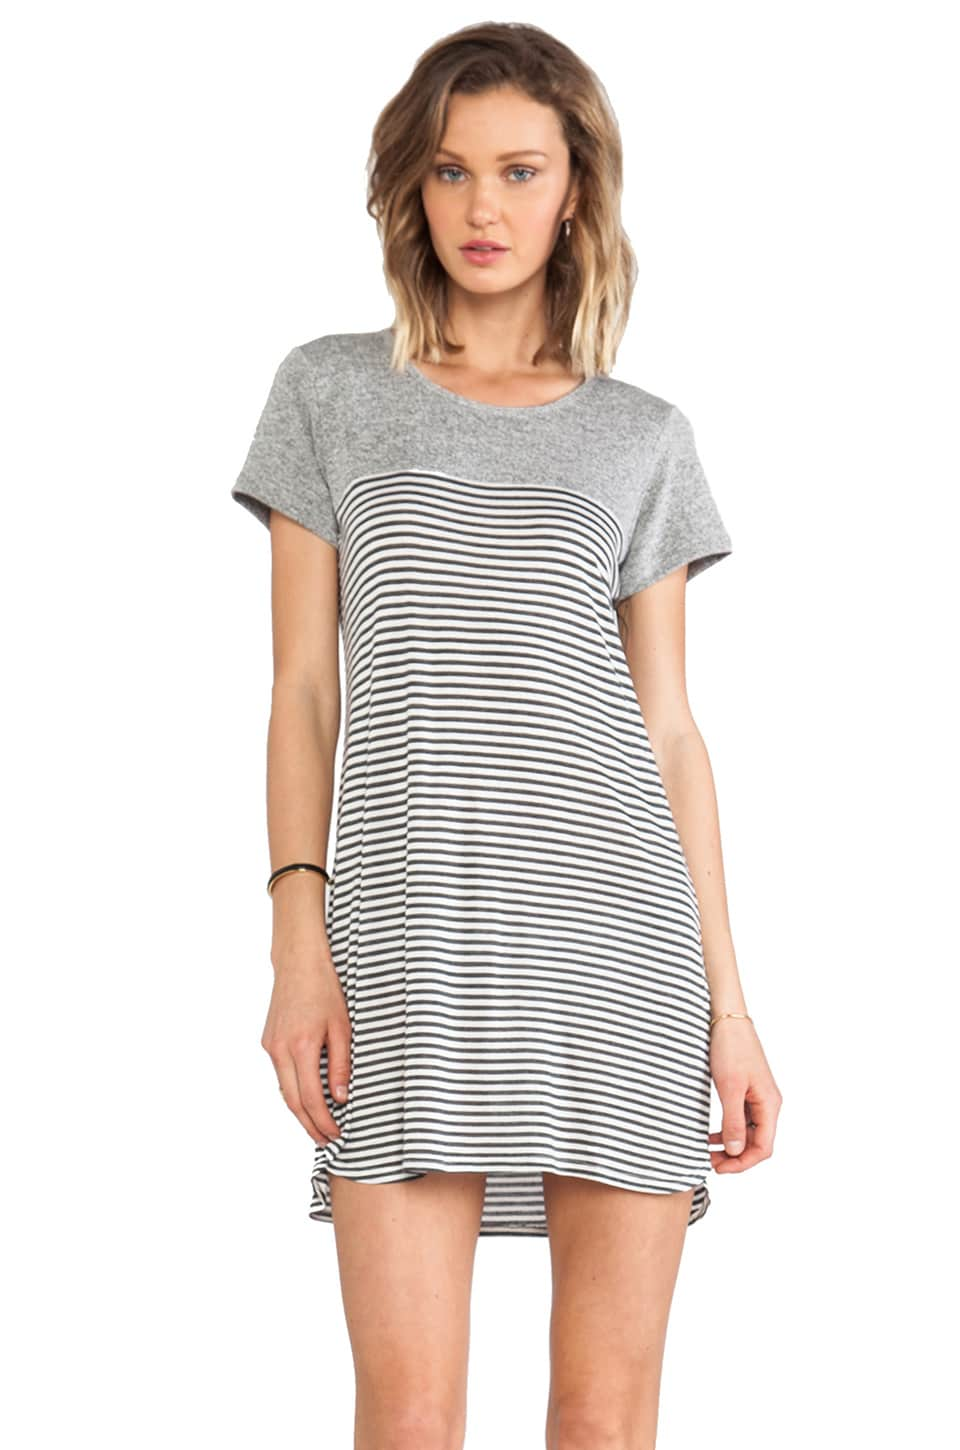 The Lady & the Sailor Contrast Pleat Back Dress in Charcoal & Melange Stripe